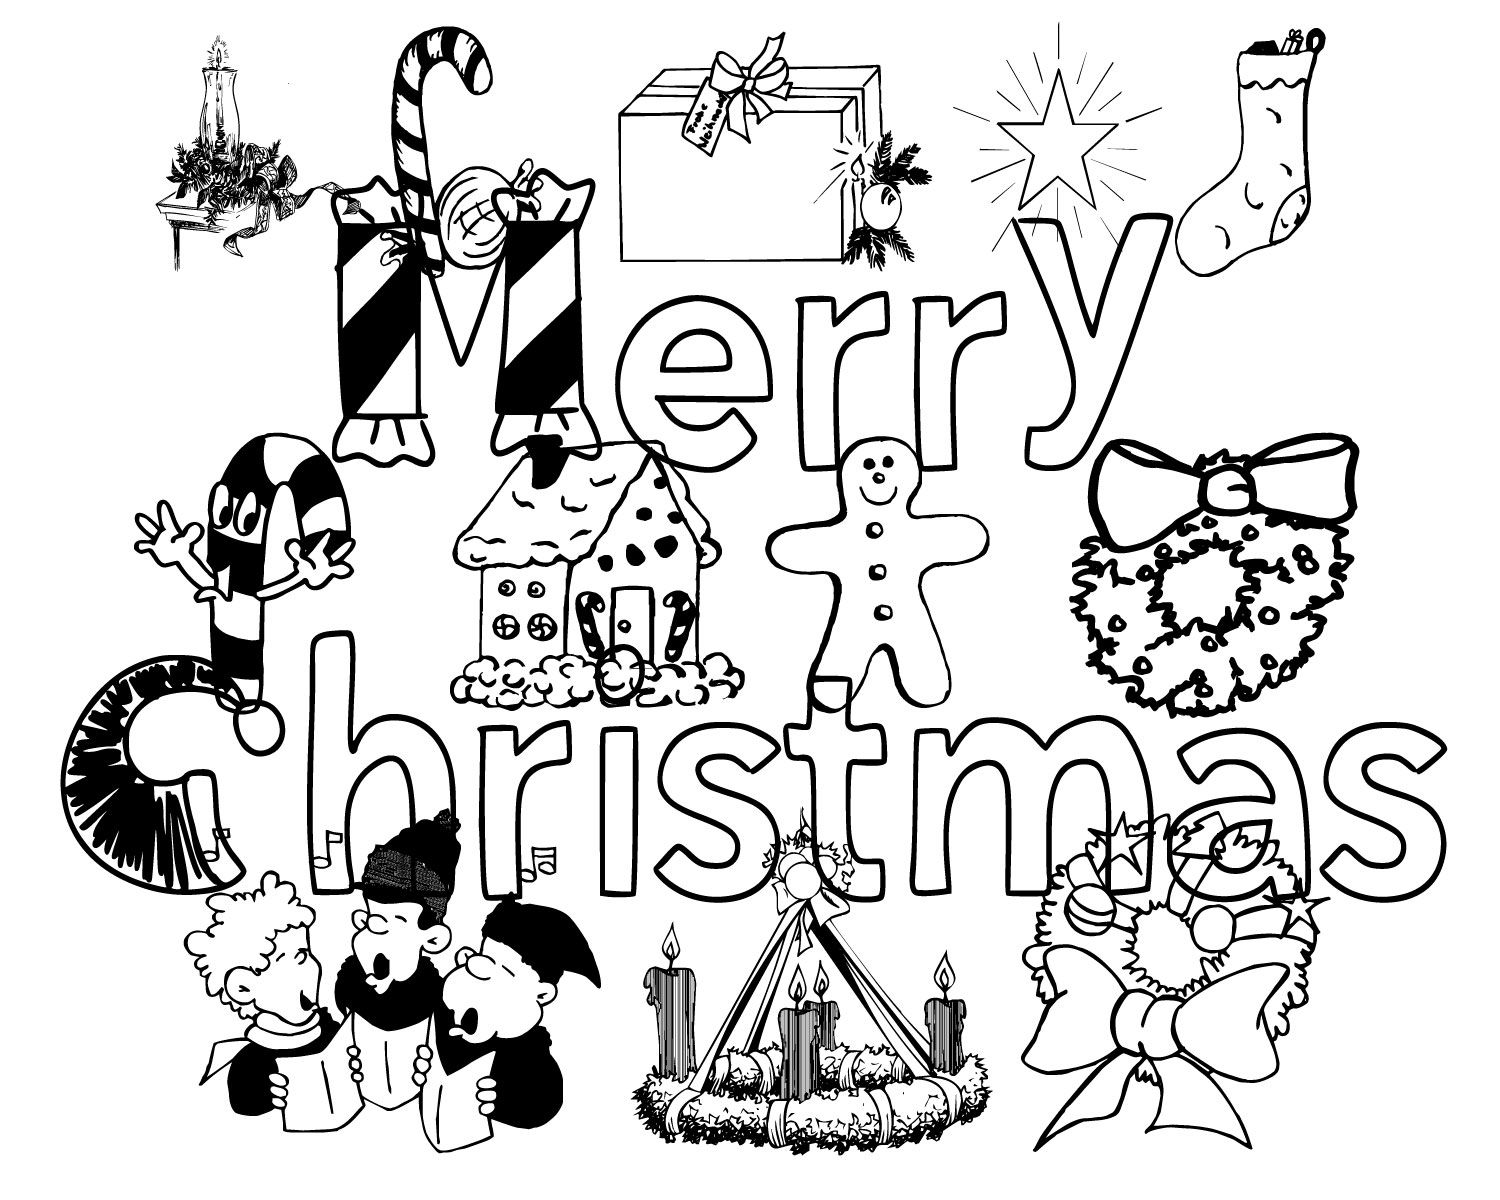 Printable Merry Christmas Coloring Pages For Kids Adults And Mom 2019 Merry Christmas Coloring Pages Christmas Coloring Pages Christmas Coloring Sheets